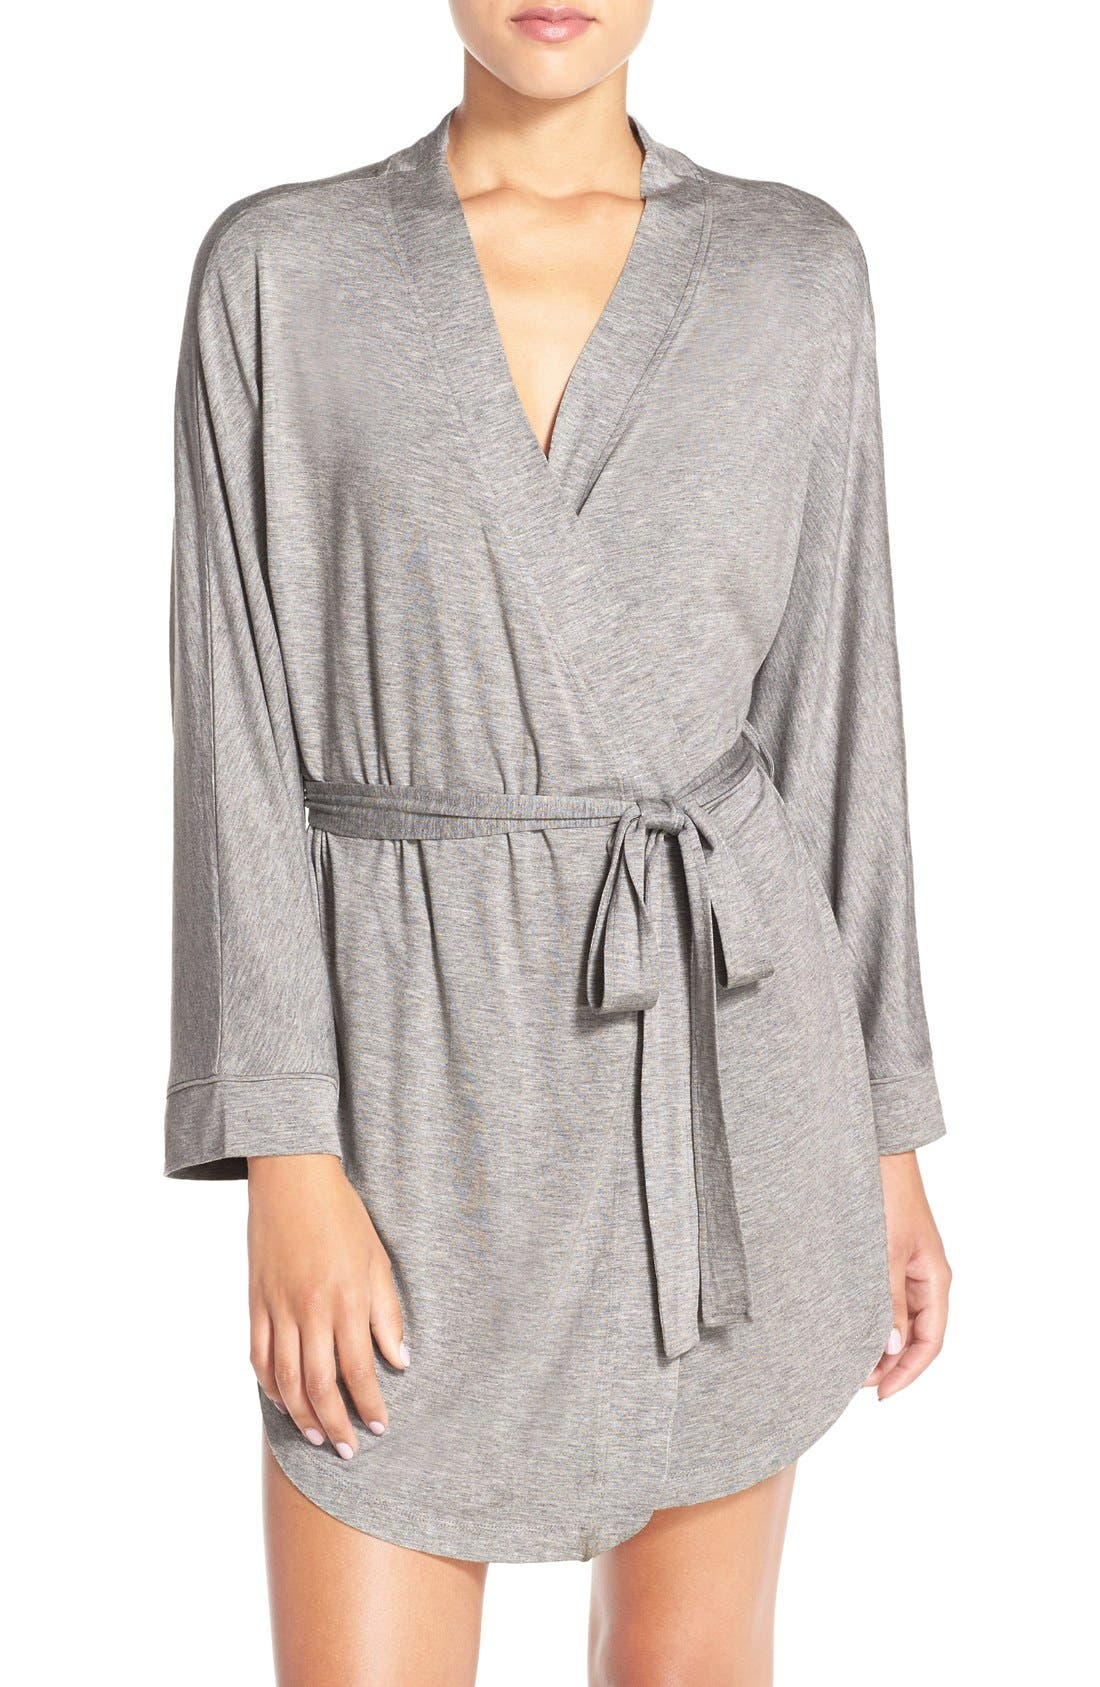 HONEYDEW INTIMATES Jersey Robe